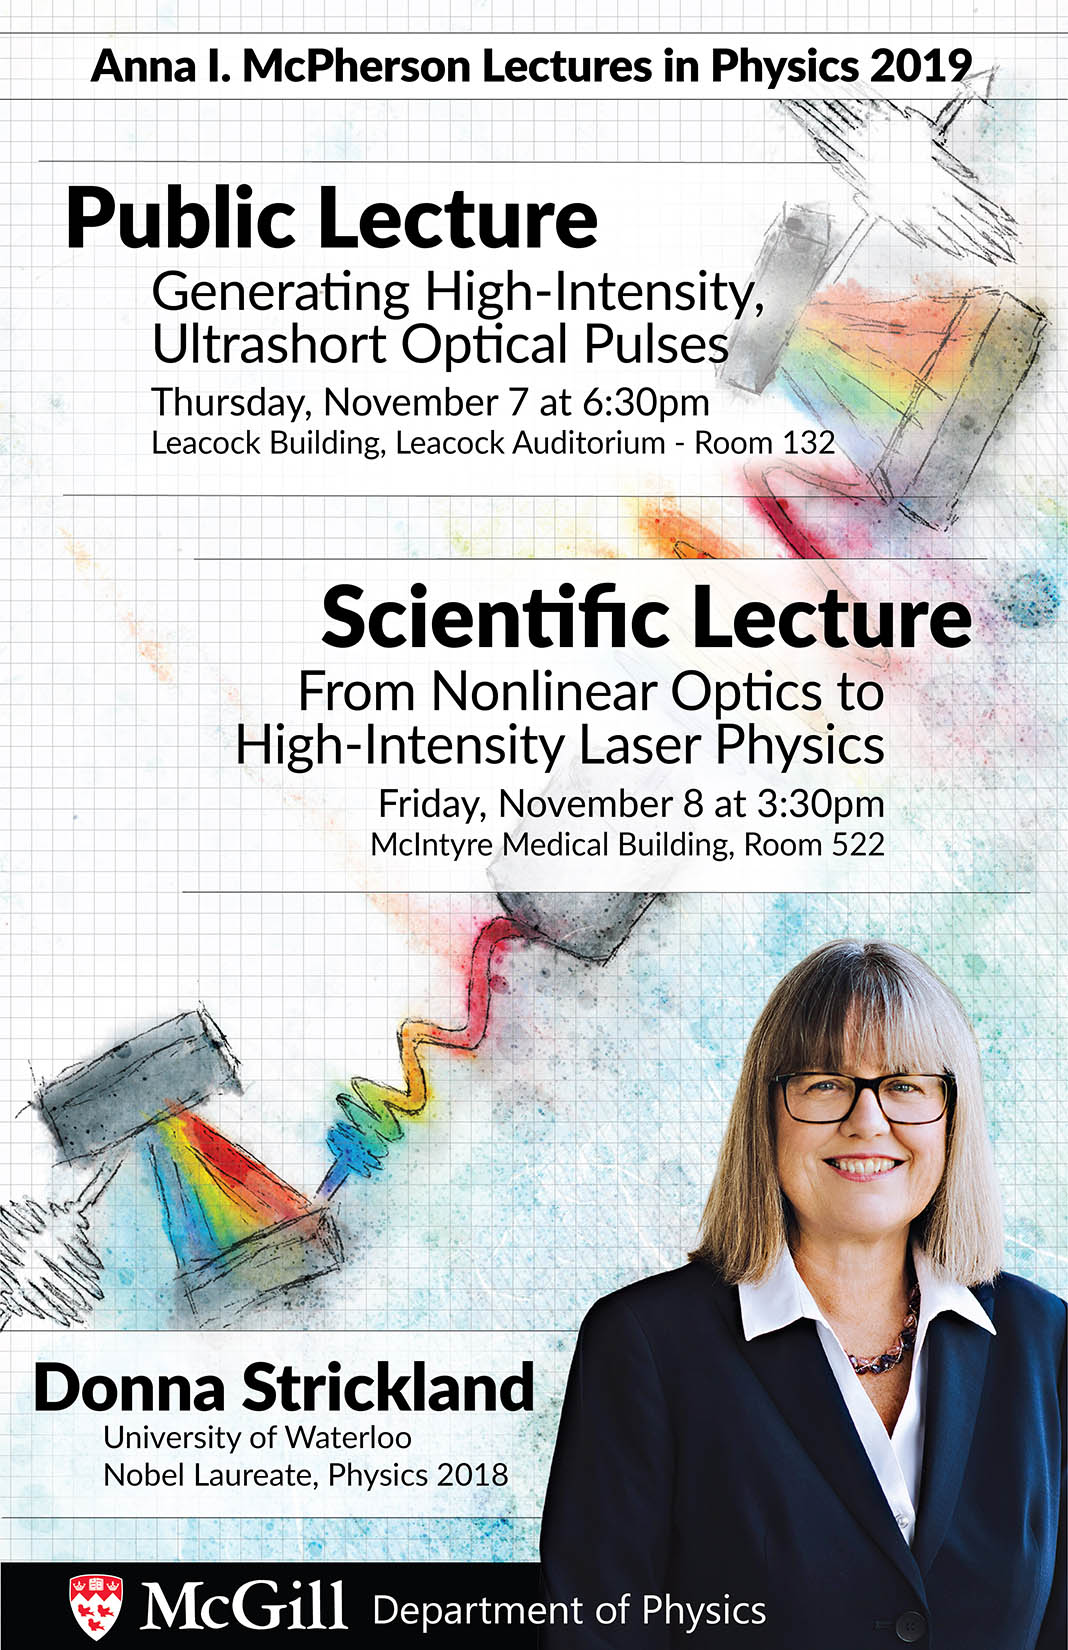 Public Lecture by Nobel Laureate Donna Strickland